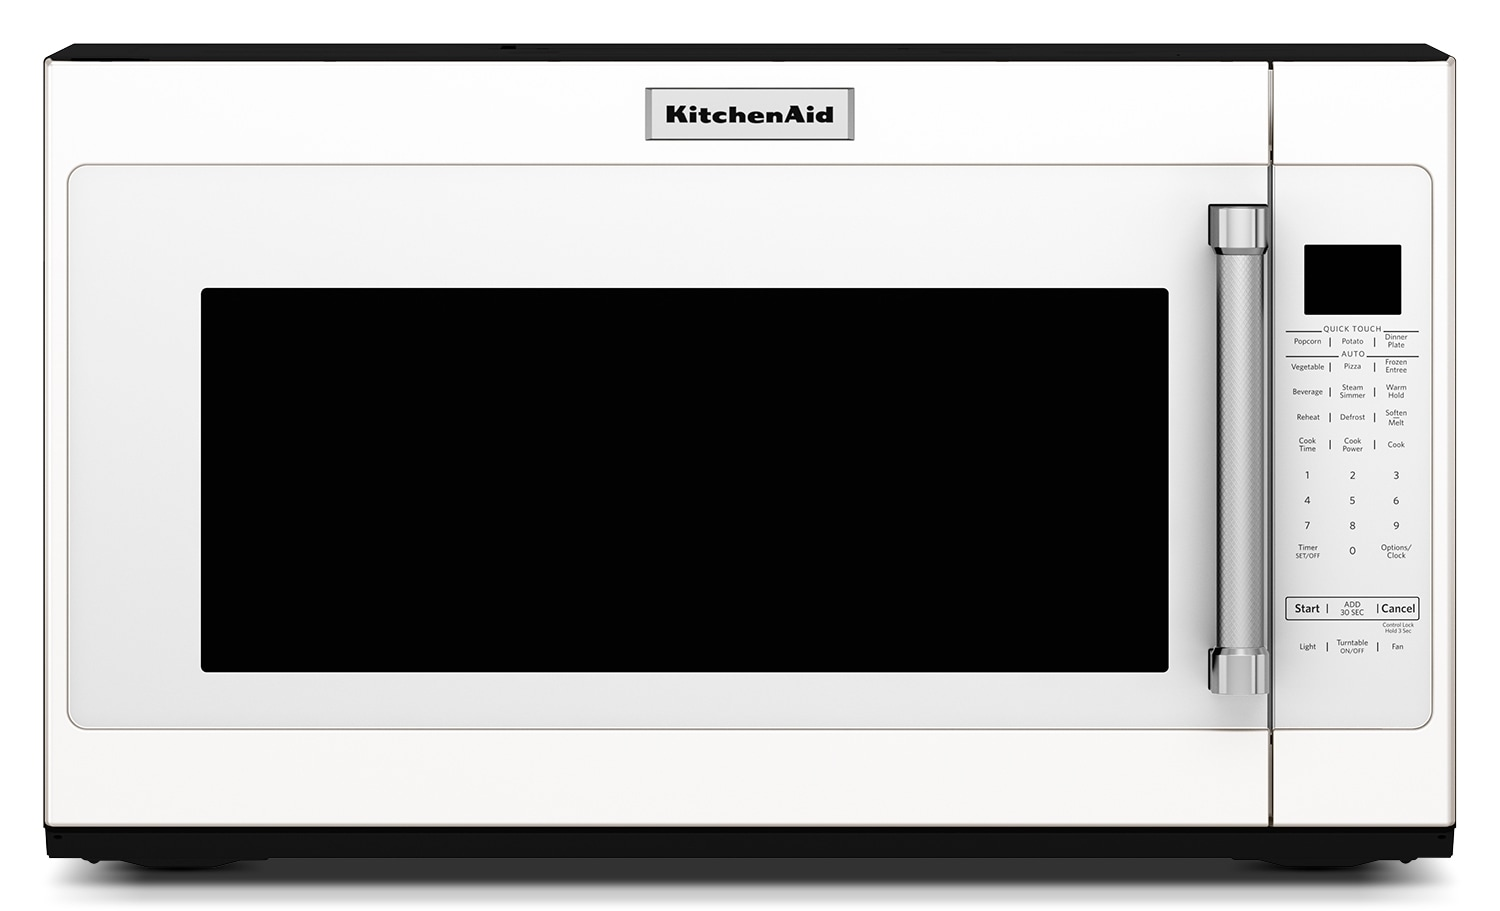 Cooking Products - KitchenAid White Over-the-Range Microwave (2.0 Cu. Ft.) - YKMHS120EW